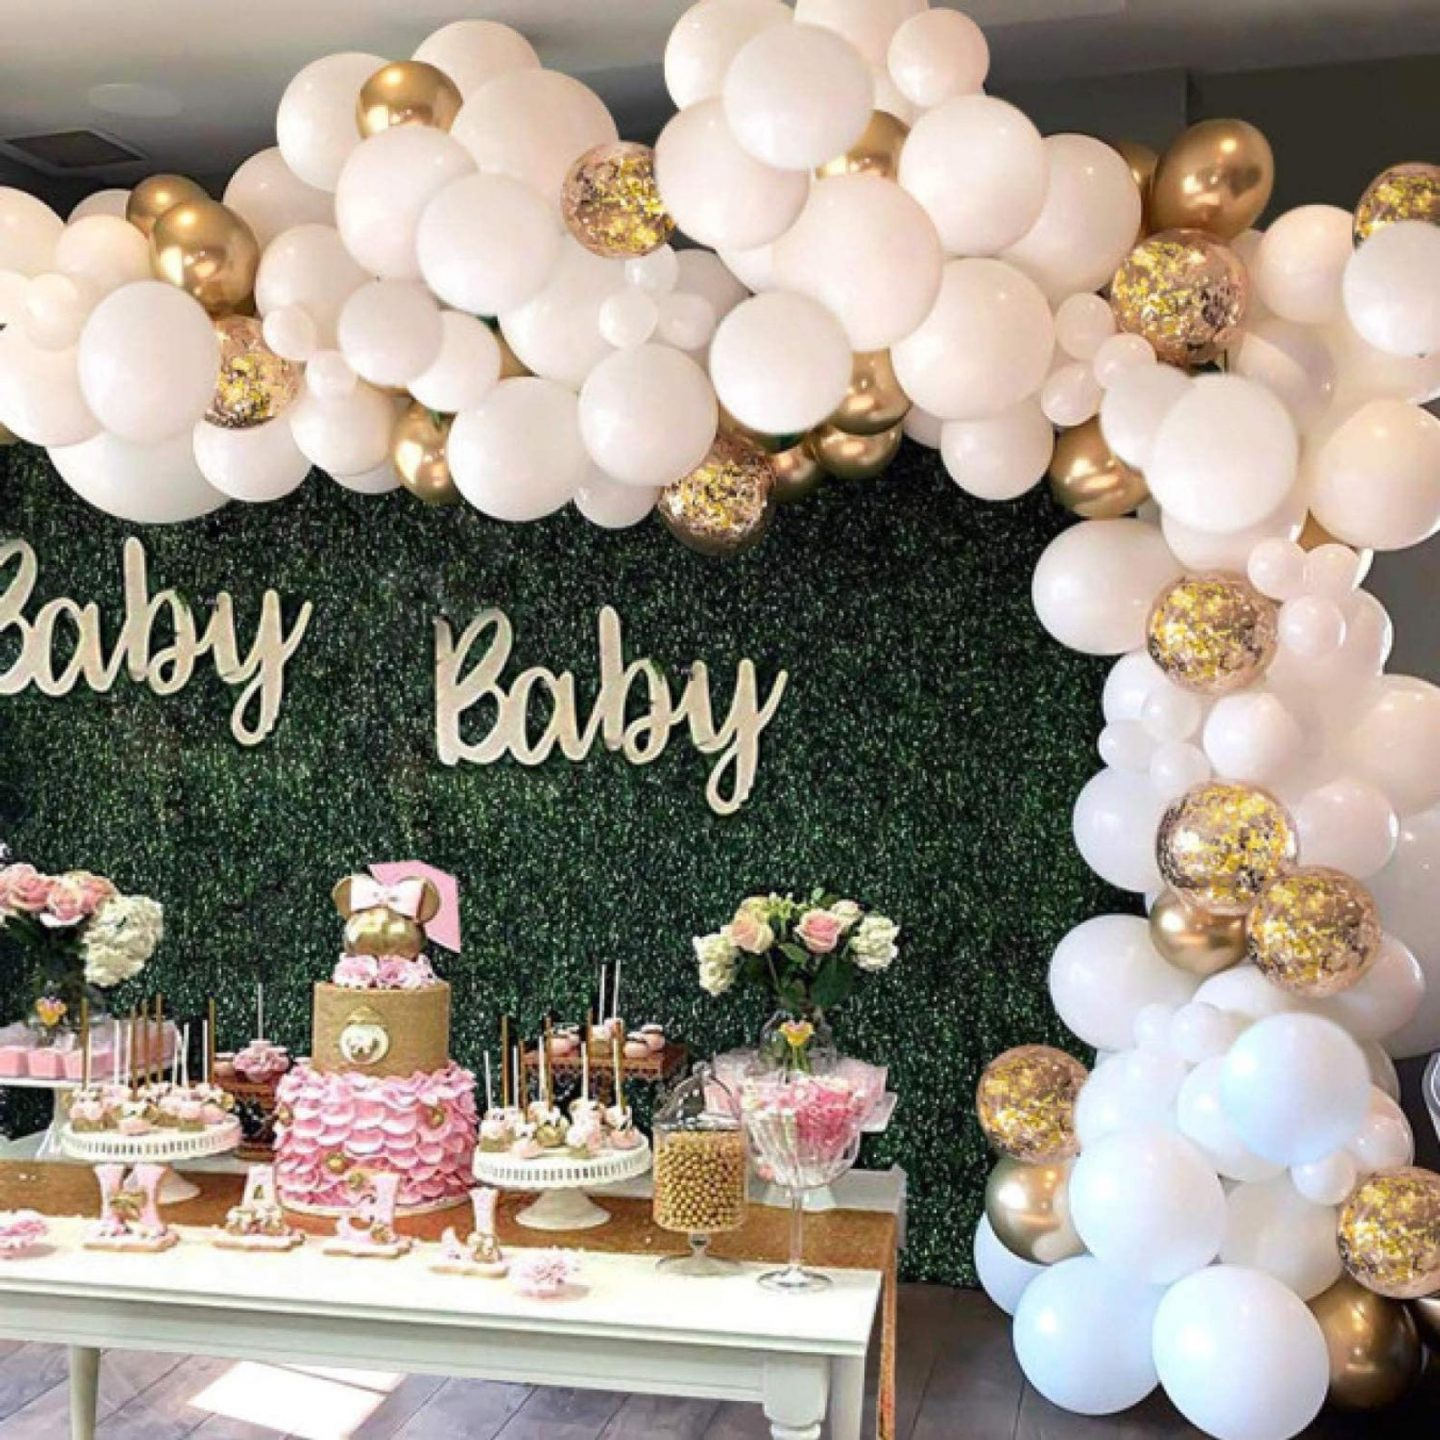 Baby shower balloons in pink and gold